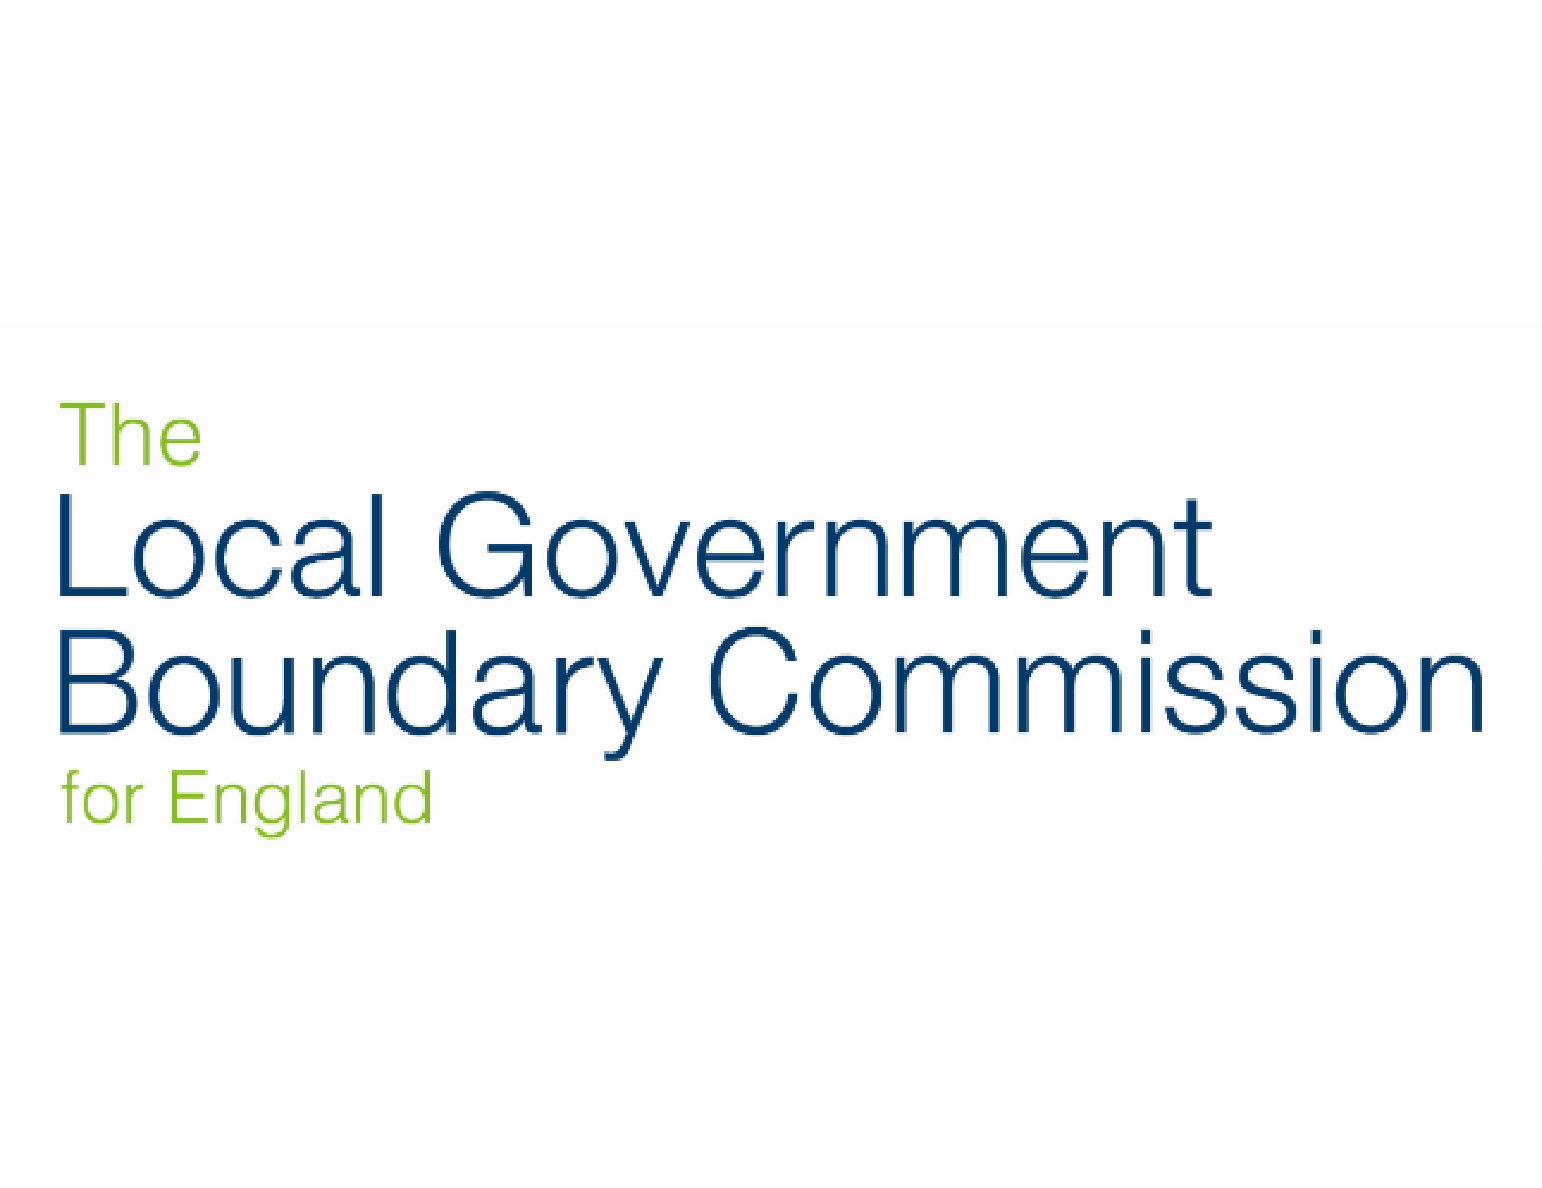 local-government-boundary-commission-england